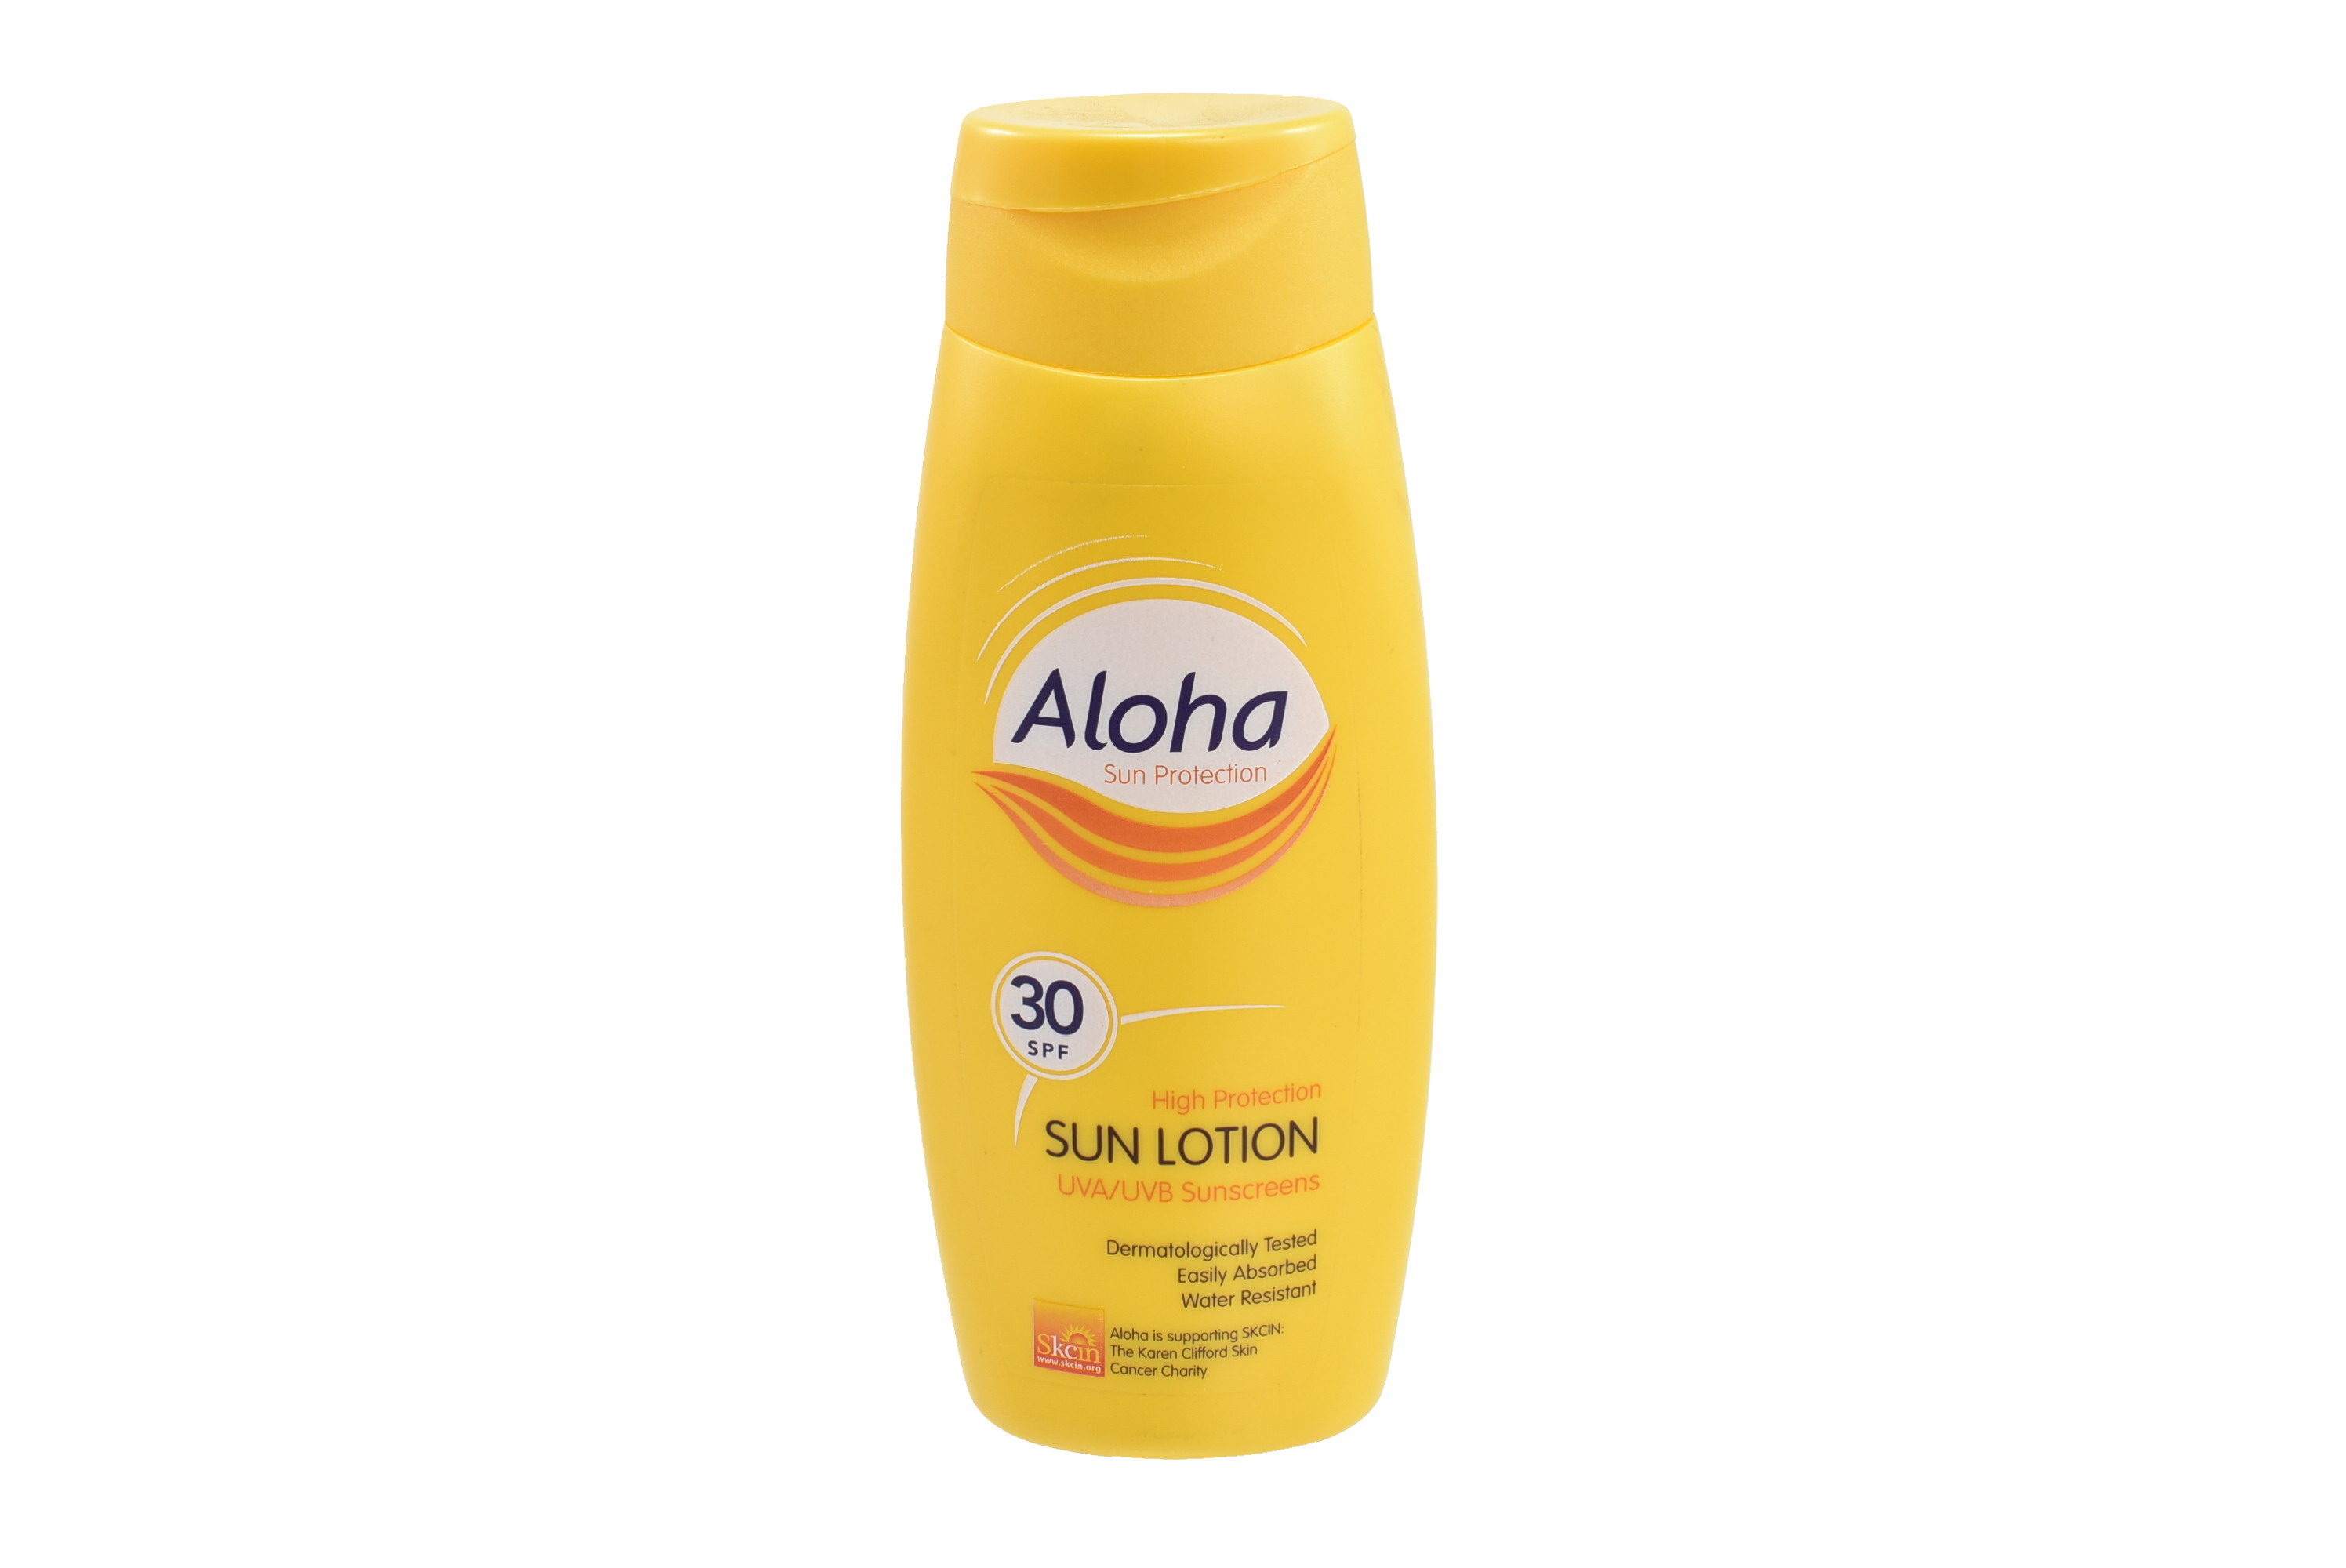 Aloha Spf 30 Lotion 250ml